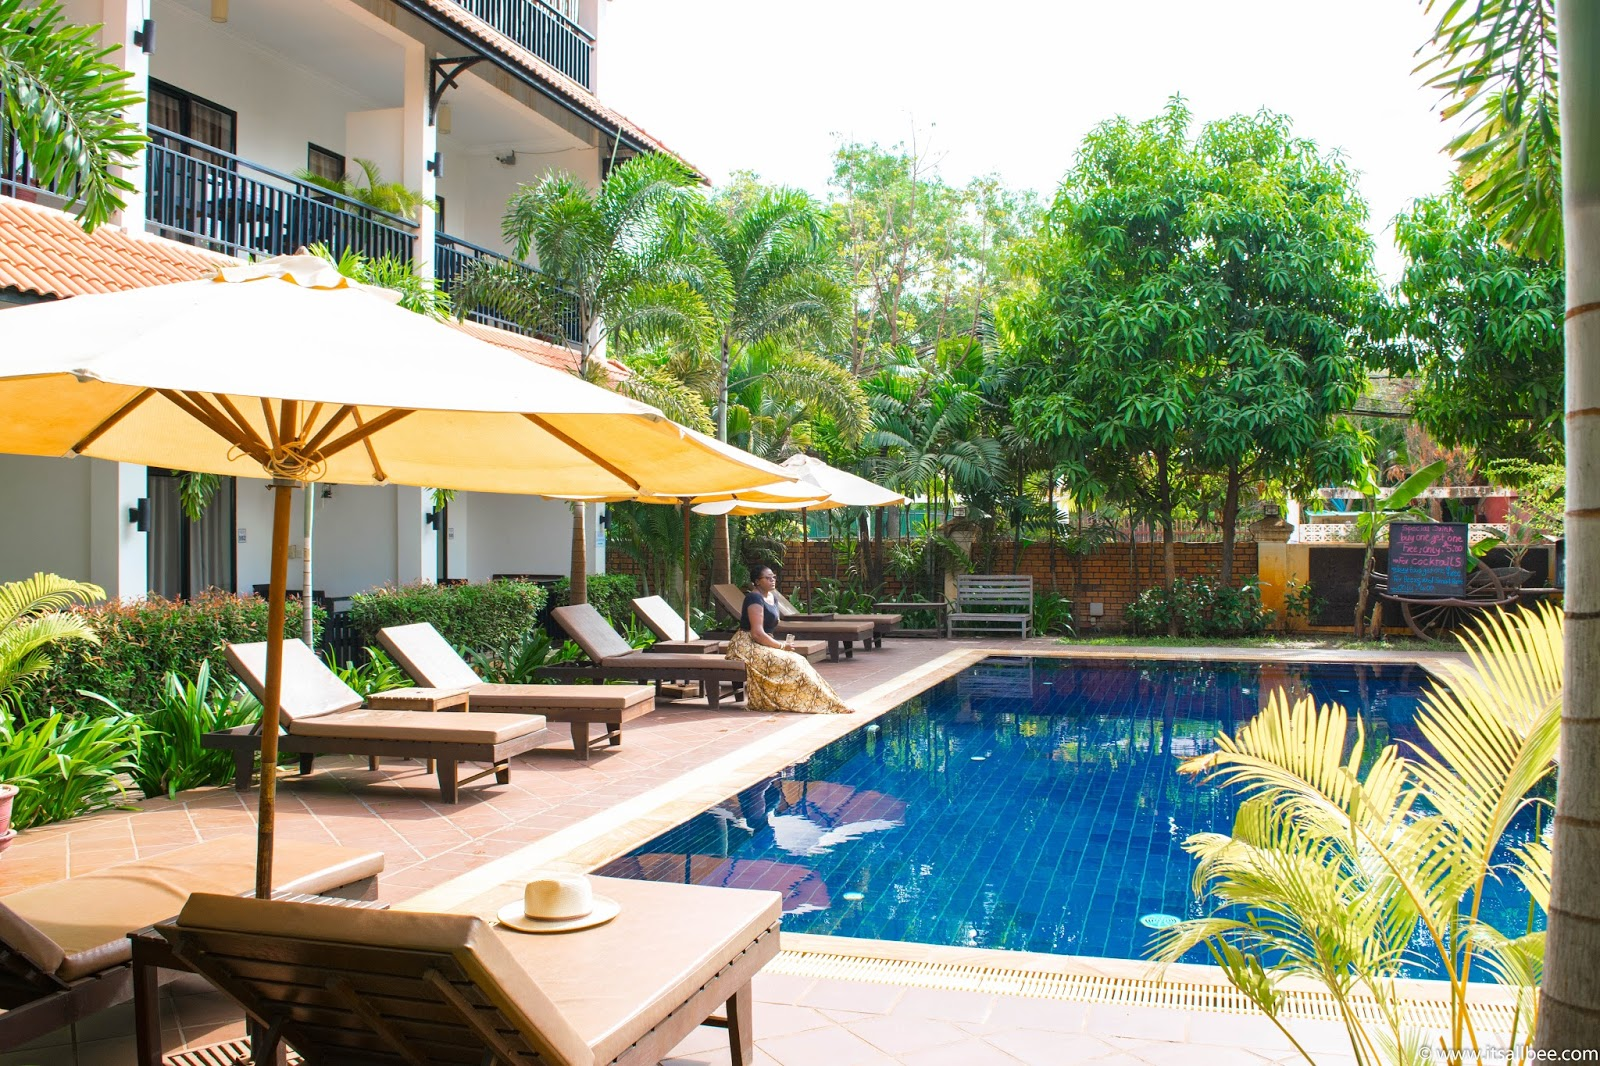 Cambodia | Where To Stay In Siem Reap near pubstreet